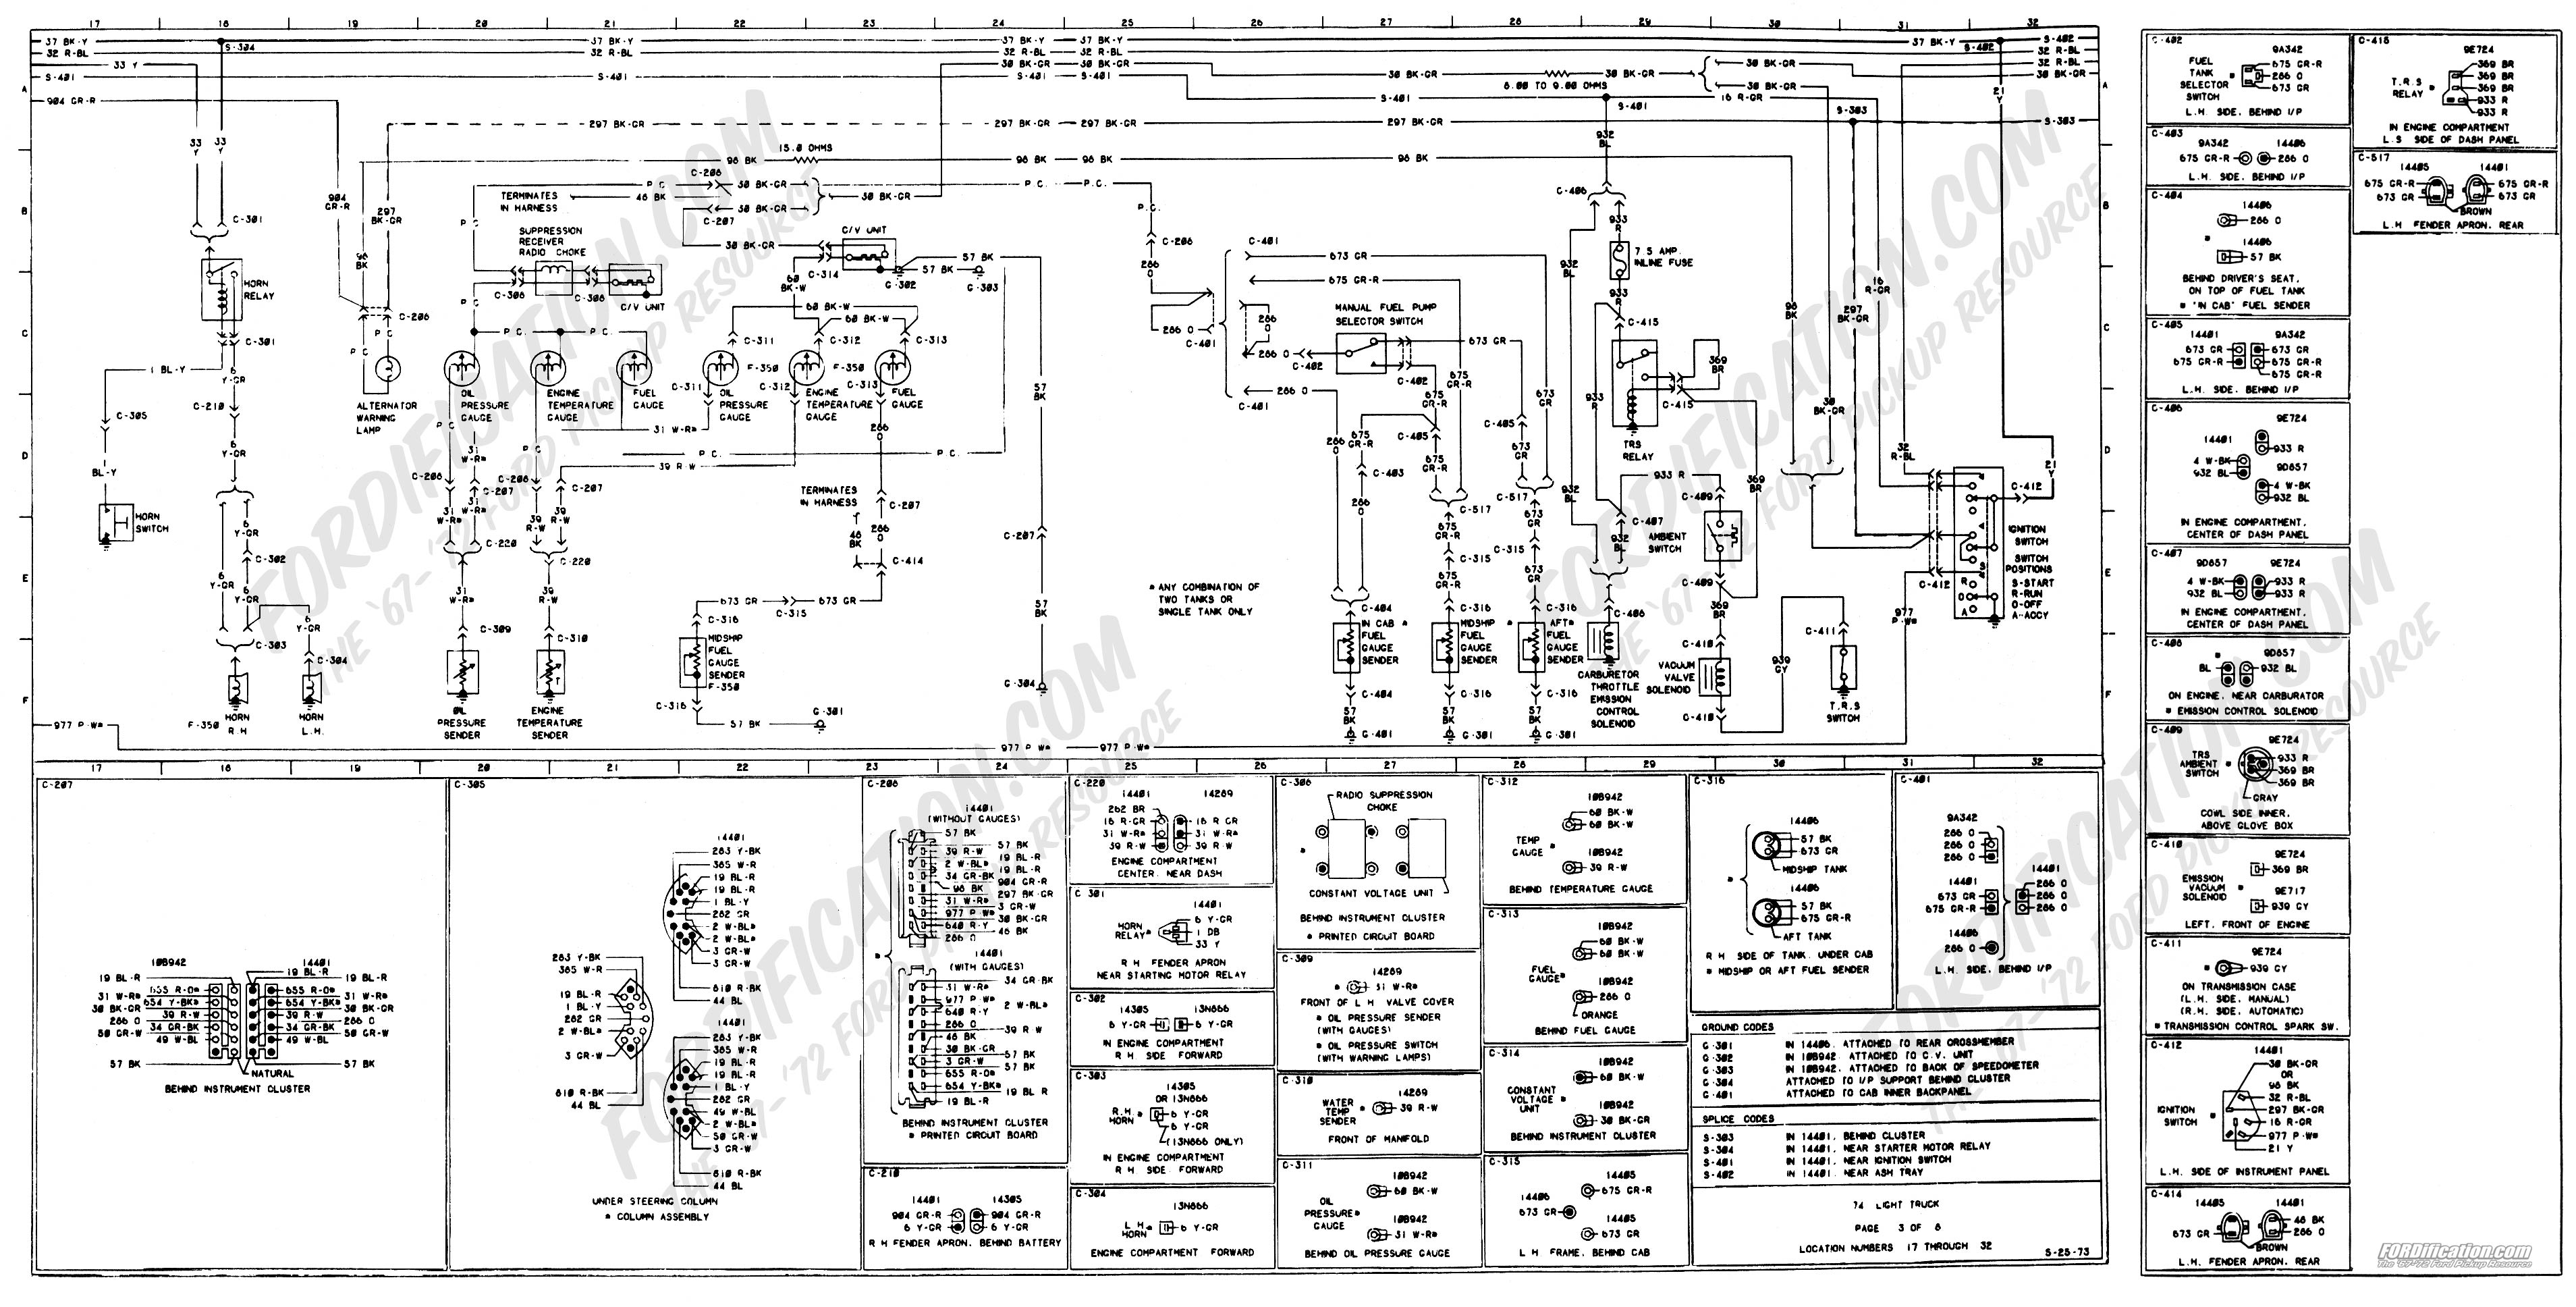 wiring_74master_3of8 1973 1979 ford truck wiring diagrams & schematics fordification net 1979 ford radio wiring diagram at n-0.co